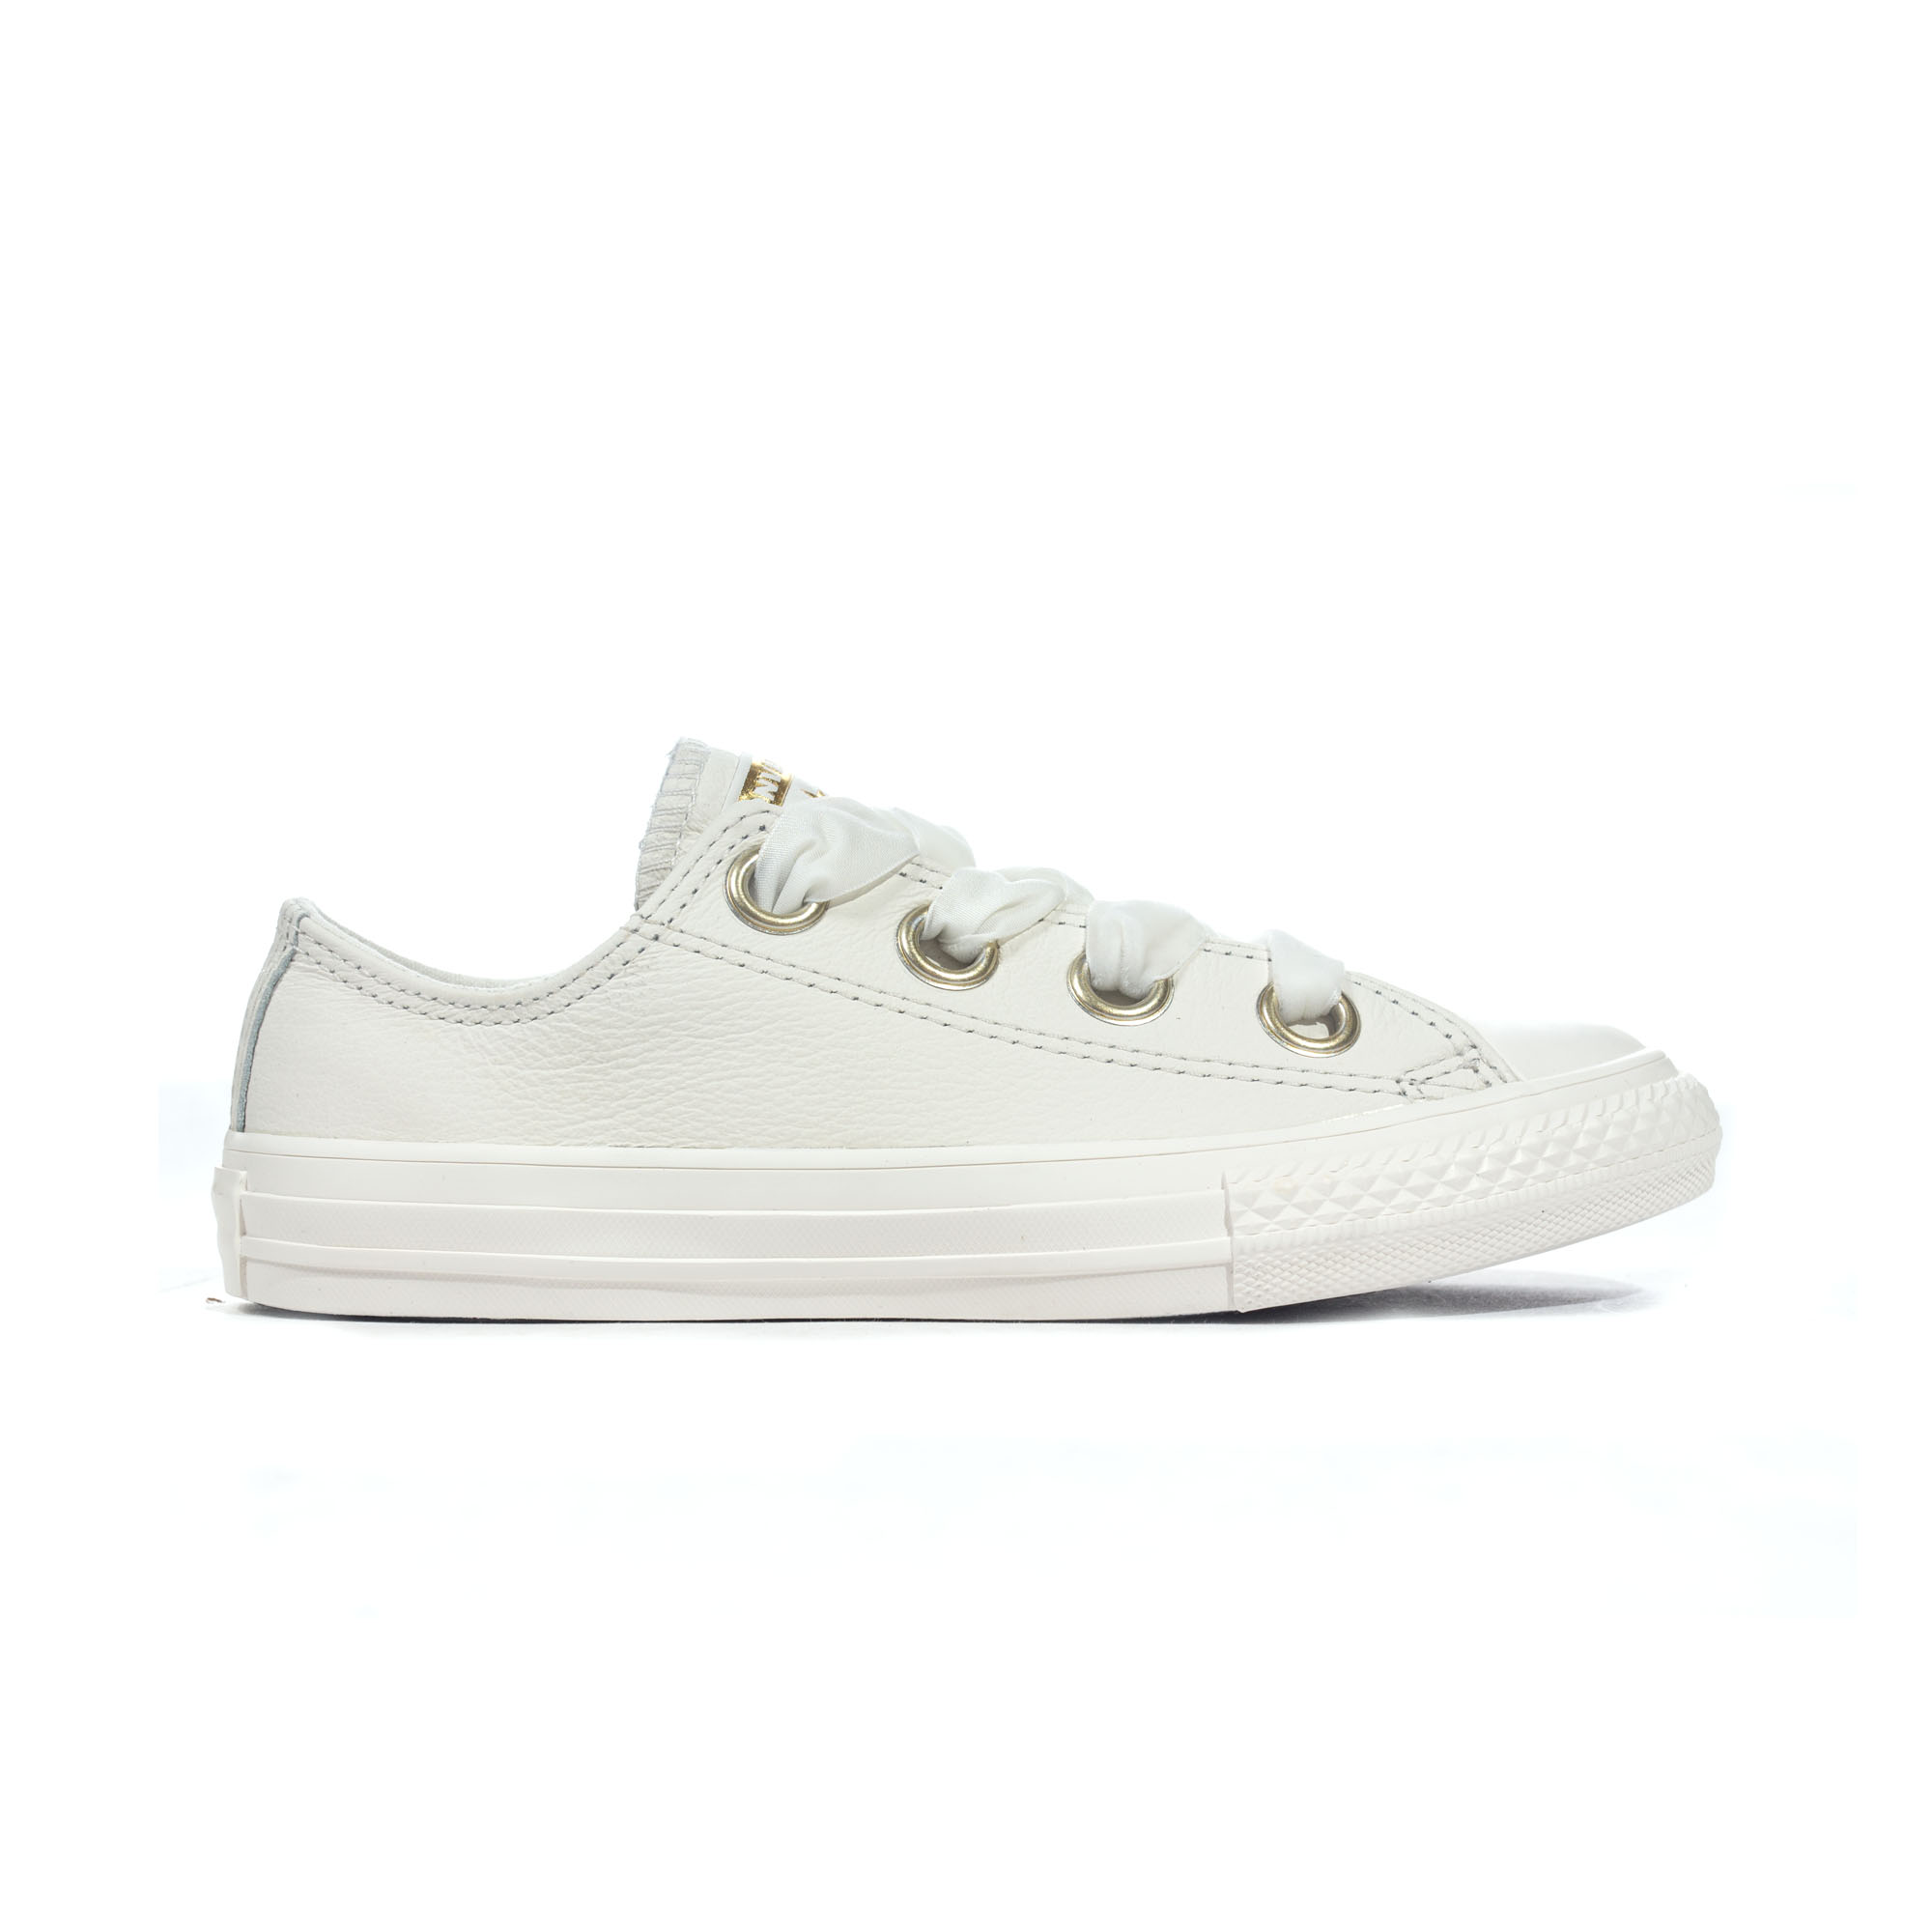 b0ffd406f2ab5d Details about Converse Chuck Taylor All Star Big Eyelets Leather Ox Girls  Trainer Vintage Gold